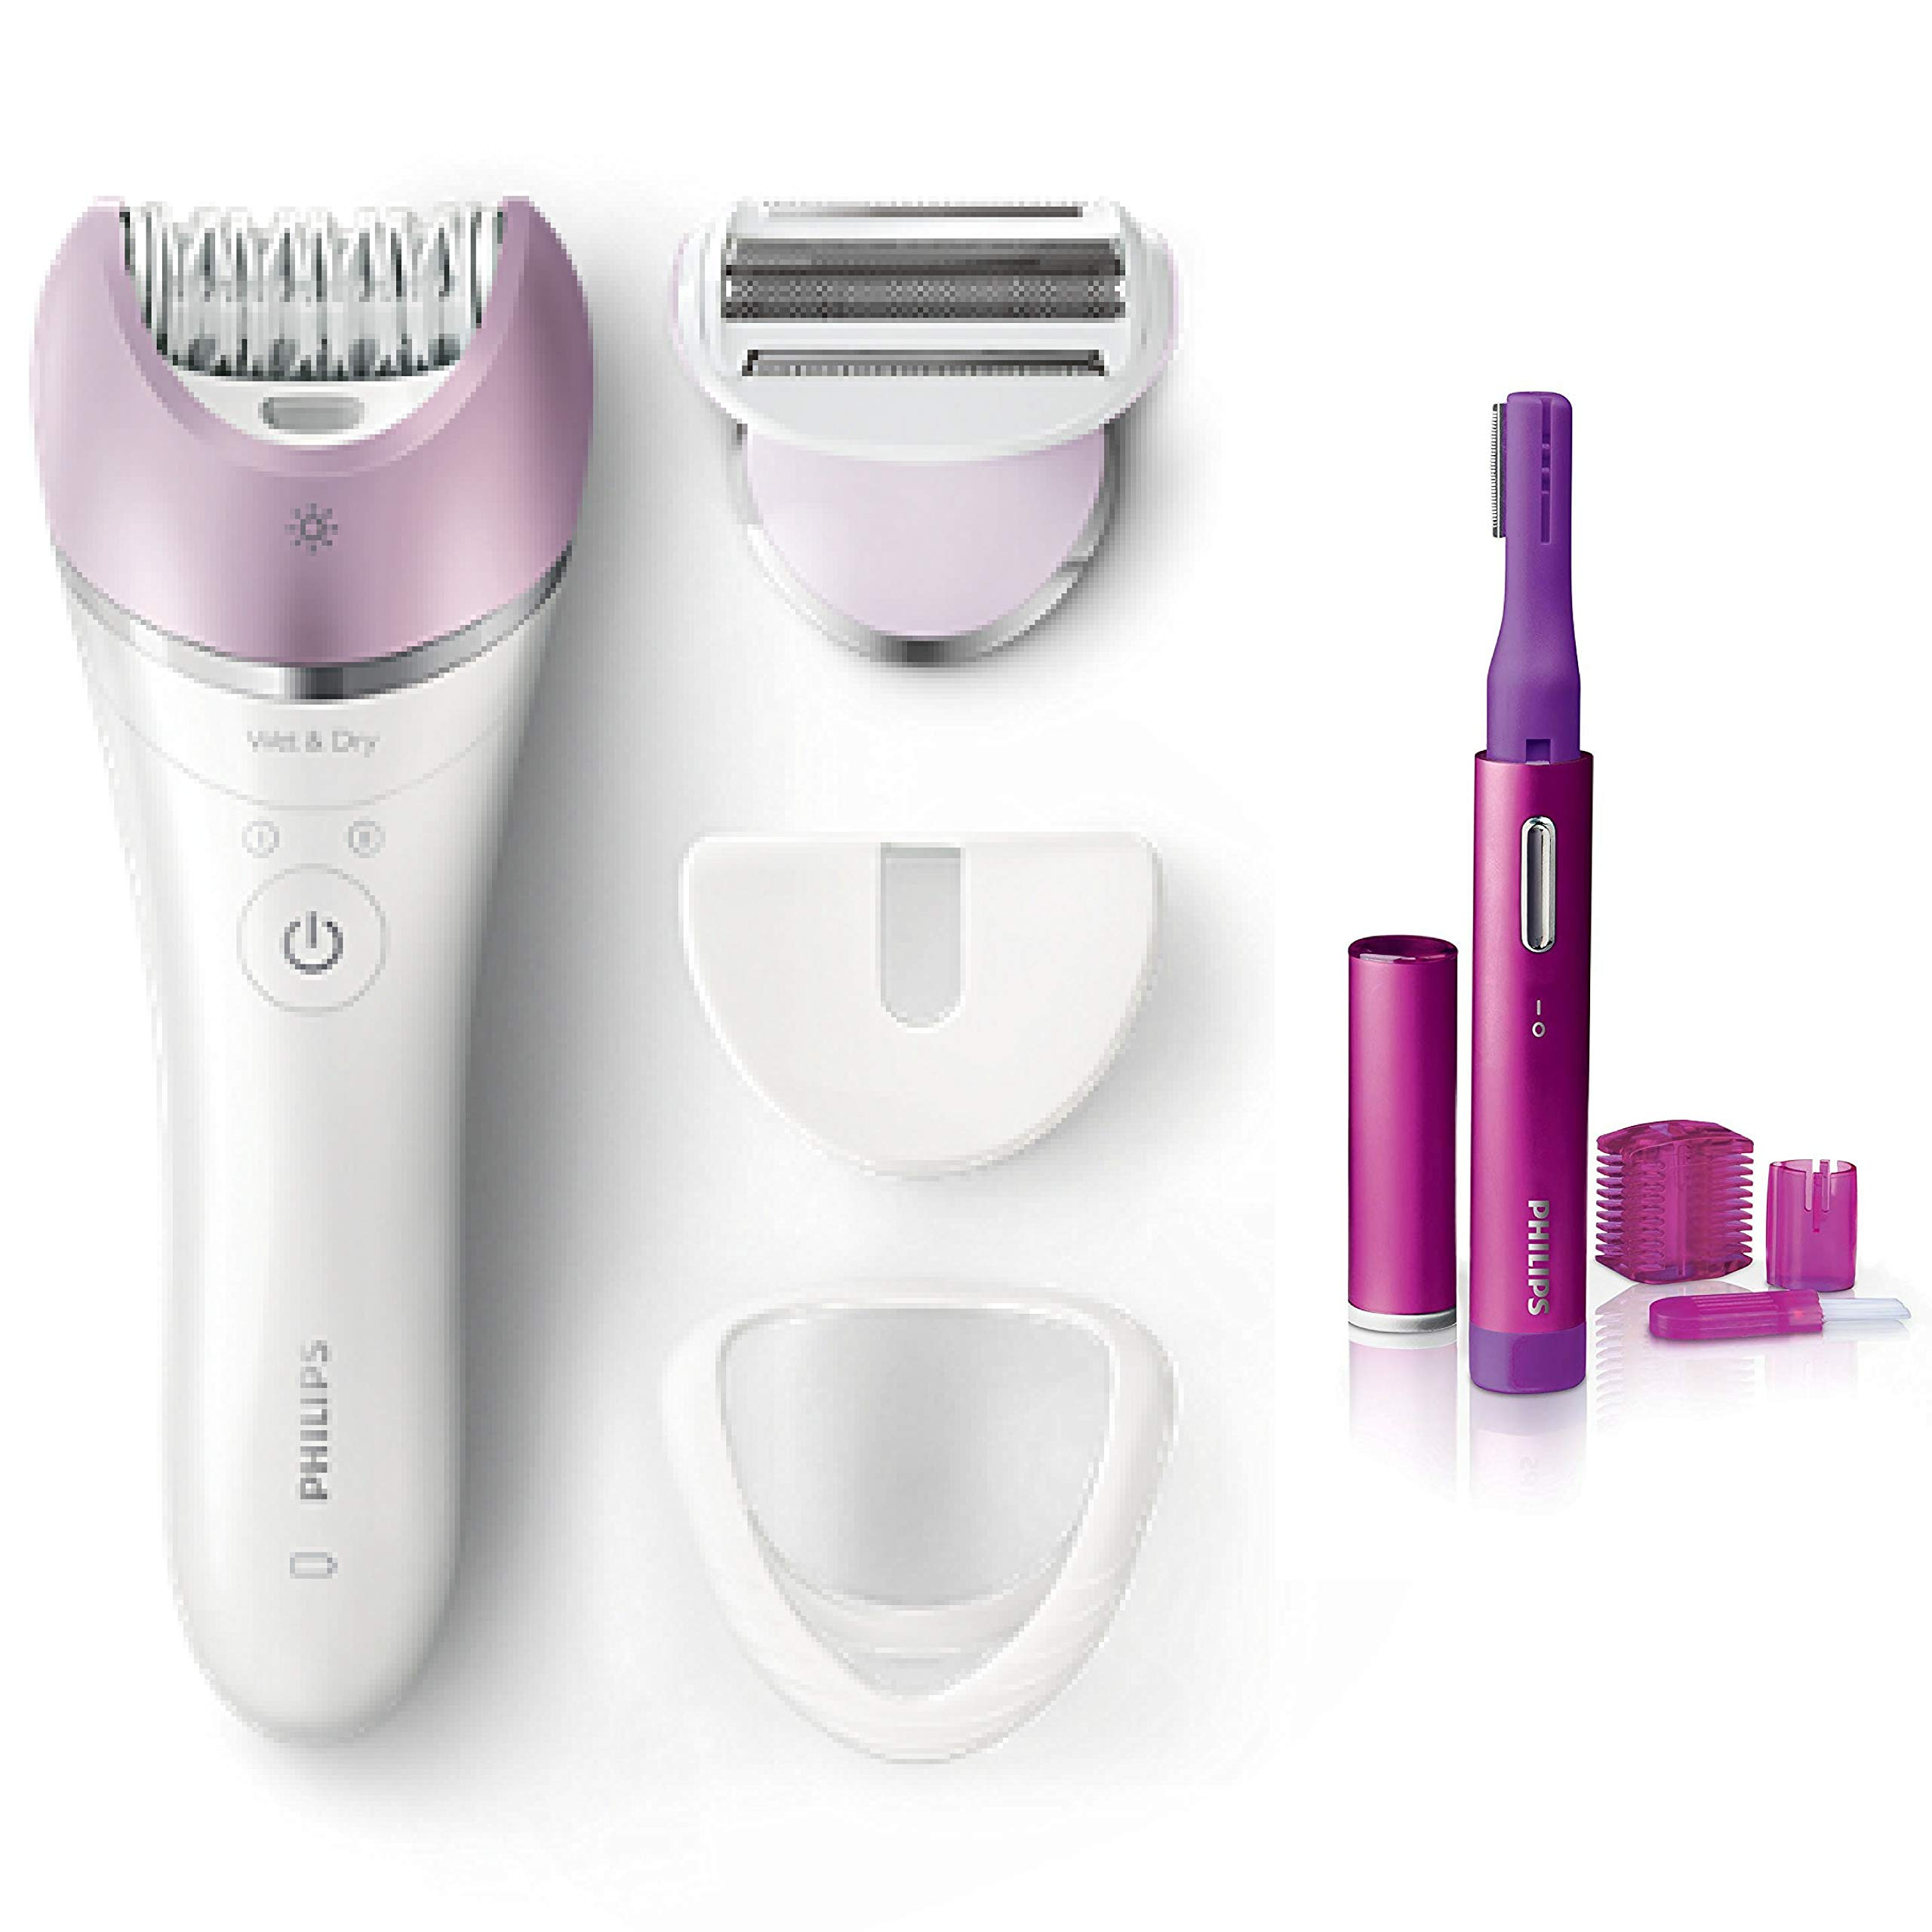 Philips Satinelle Advanced Epilator, Electric Hair Removal, Cordless Wet & Dry Use + Bonus Precision Perfect compact Trimmer for Women, Facial hair & Eyebrows